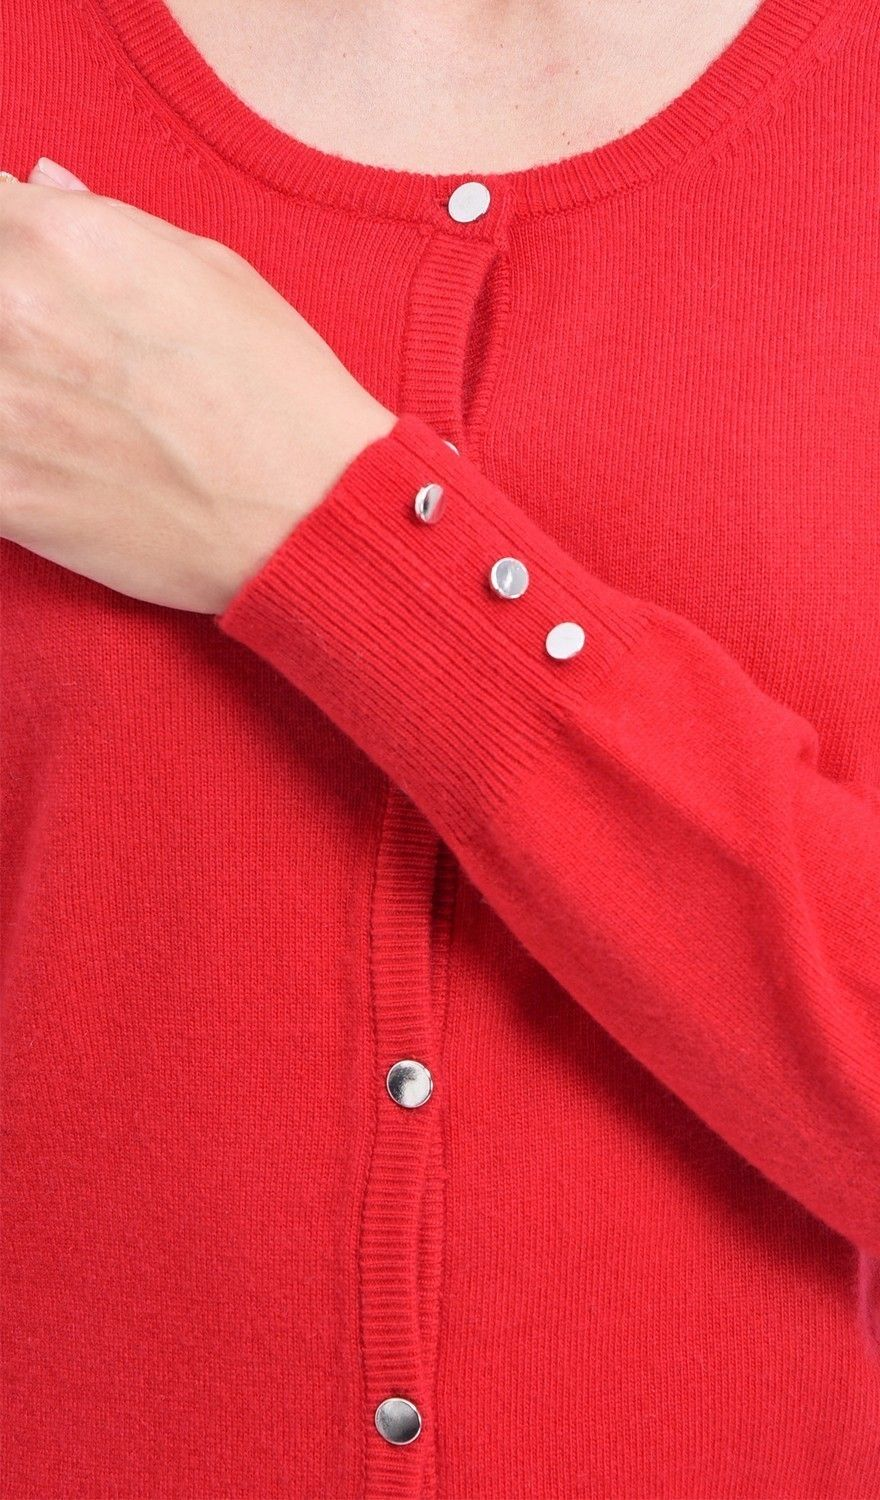 C&JO Round Neck Cardigan with Silver Buttons in Red